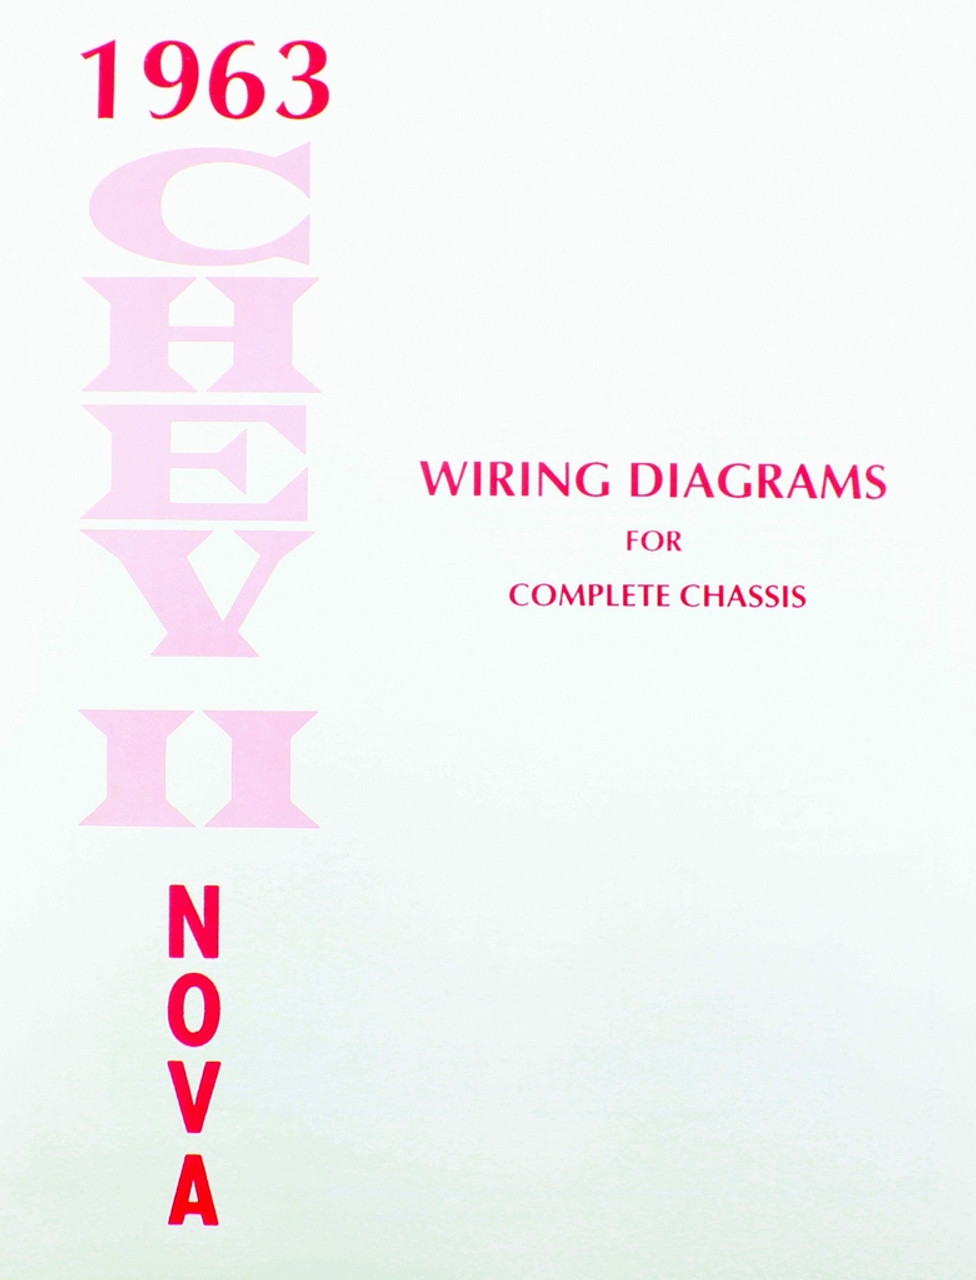 63 1963 CHEVY NOVA ELECTRICAL WIRING DIAGRAM MANUAL - I-5 Classic Chevy